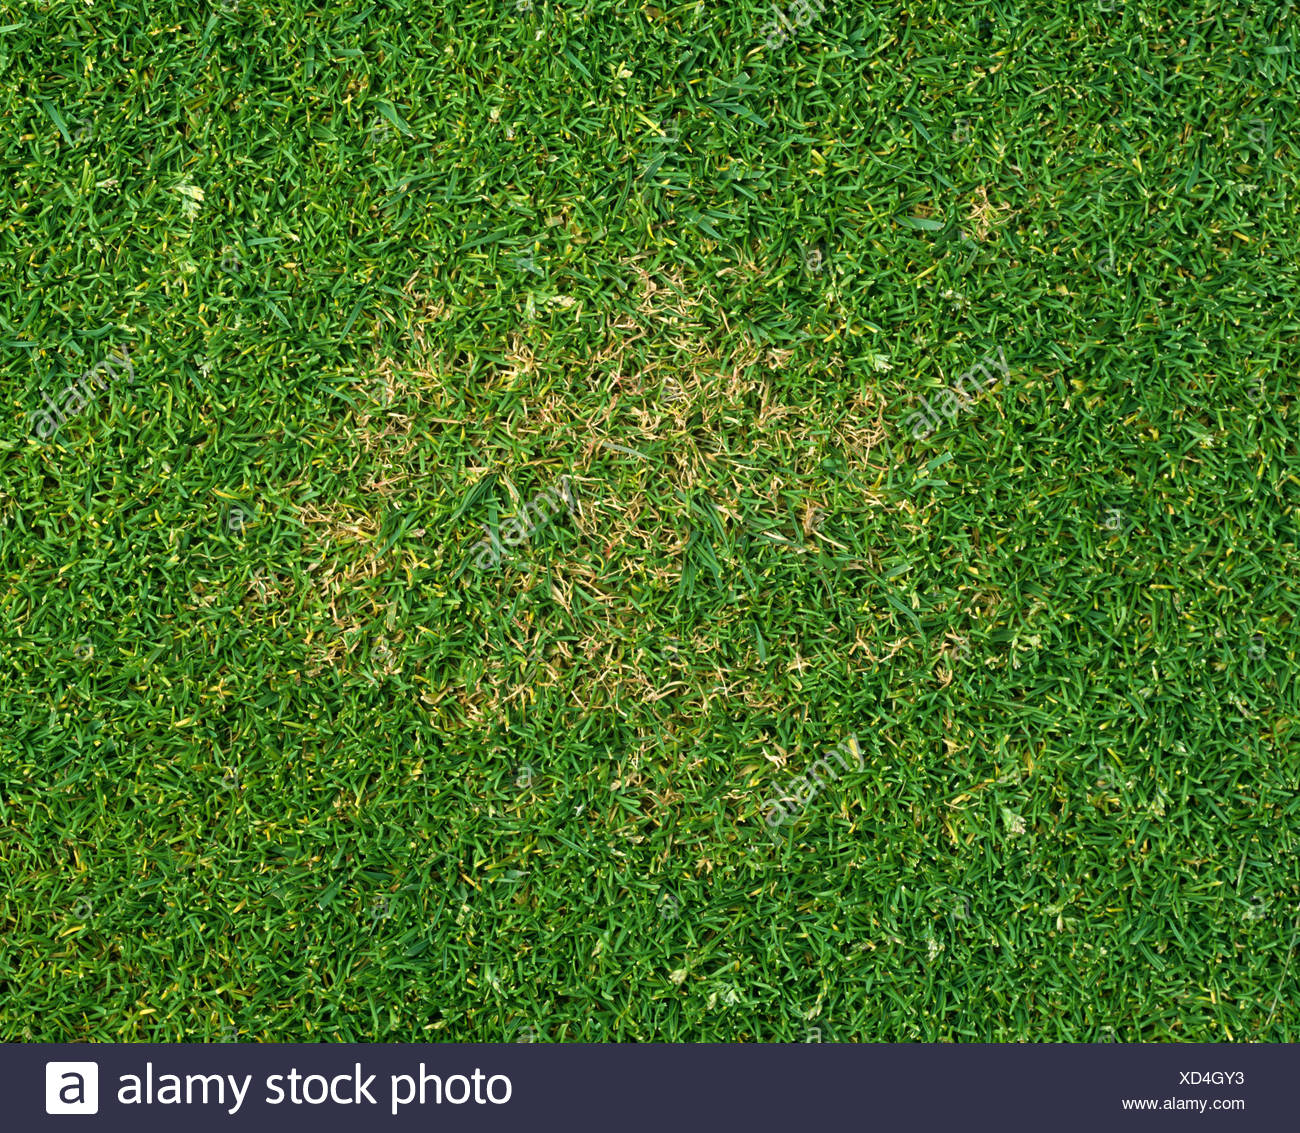 A patch of Poa sp Turf grass with red thread Laetisaria fuciformis infection - Stock Image